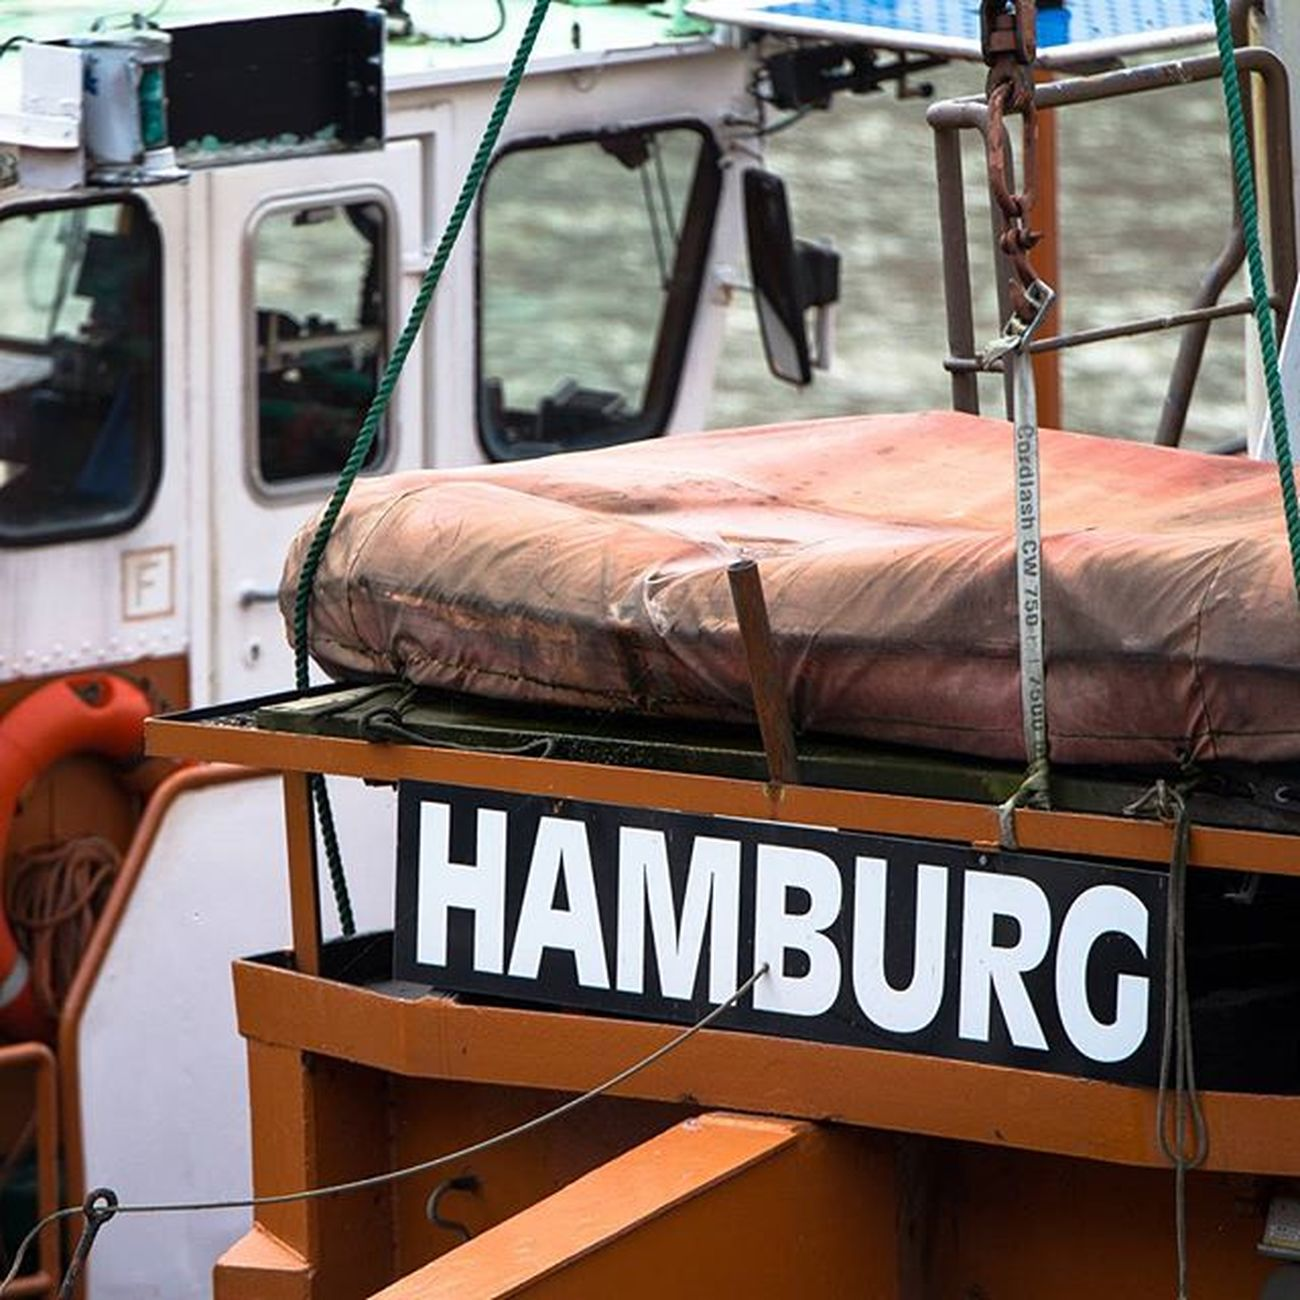 Hamburg ❤ Harbour City Town Hamburg Igershamburg Igersgermany Instahamburg Boat Water Sky Clouds Hamburgmeineperle Fishing Fish Blue Intotheblue  Deinhamburg Meineperle Germany Town Water Hh Traveling Travel